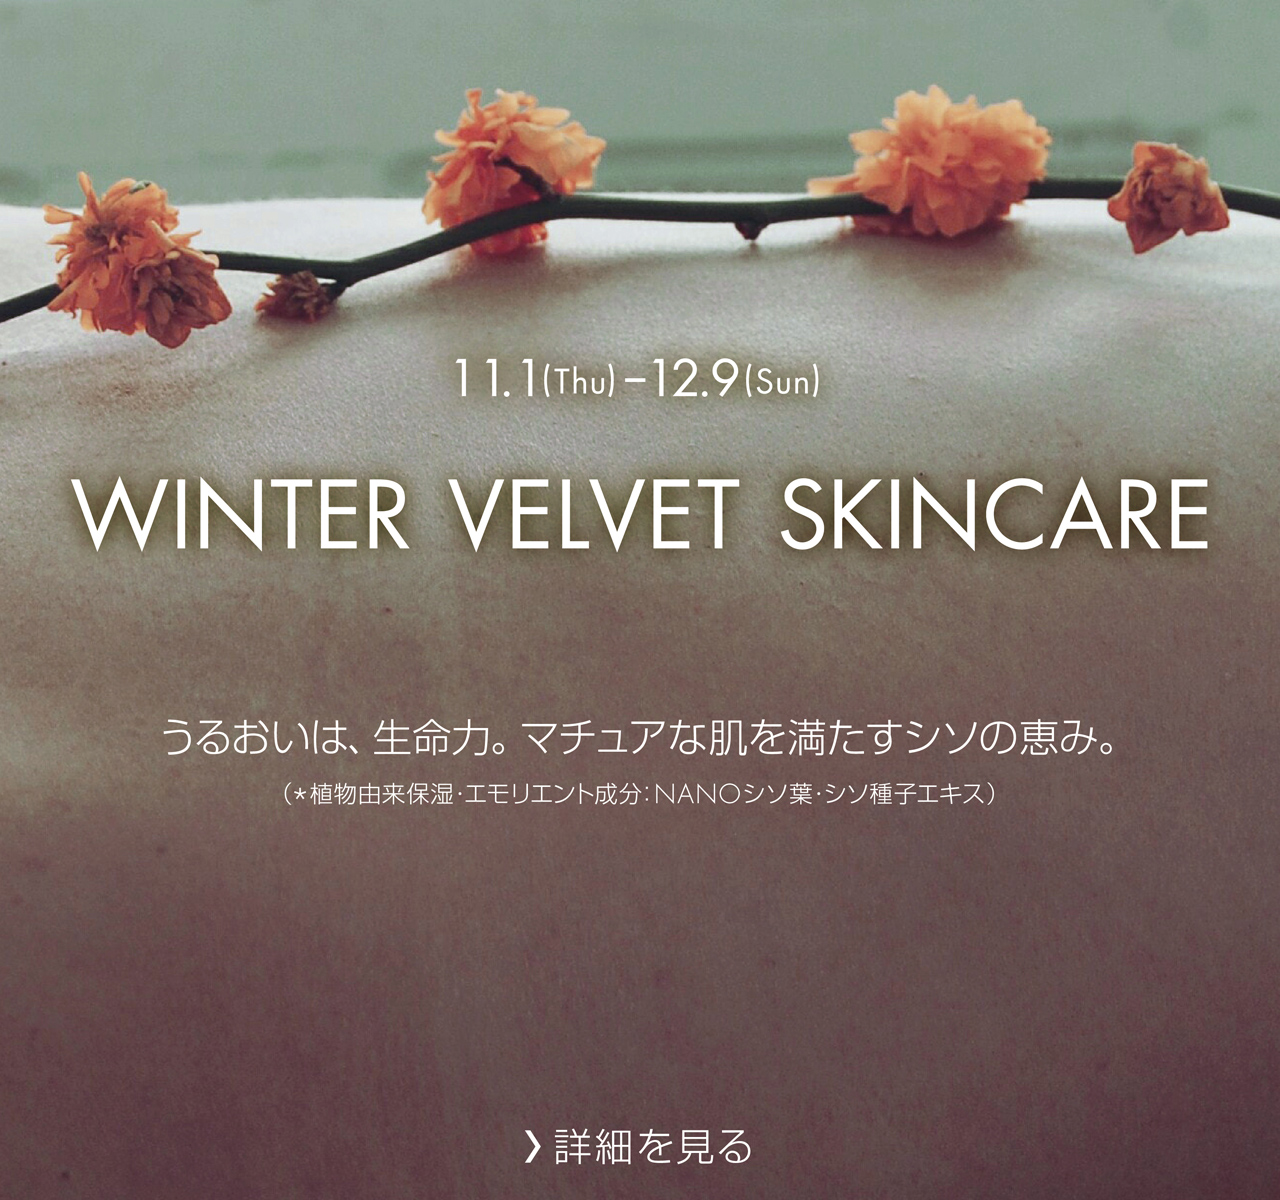 WINTER VELVET SKINCARE